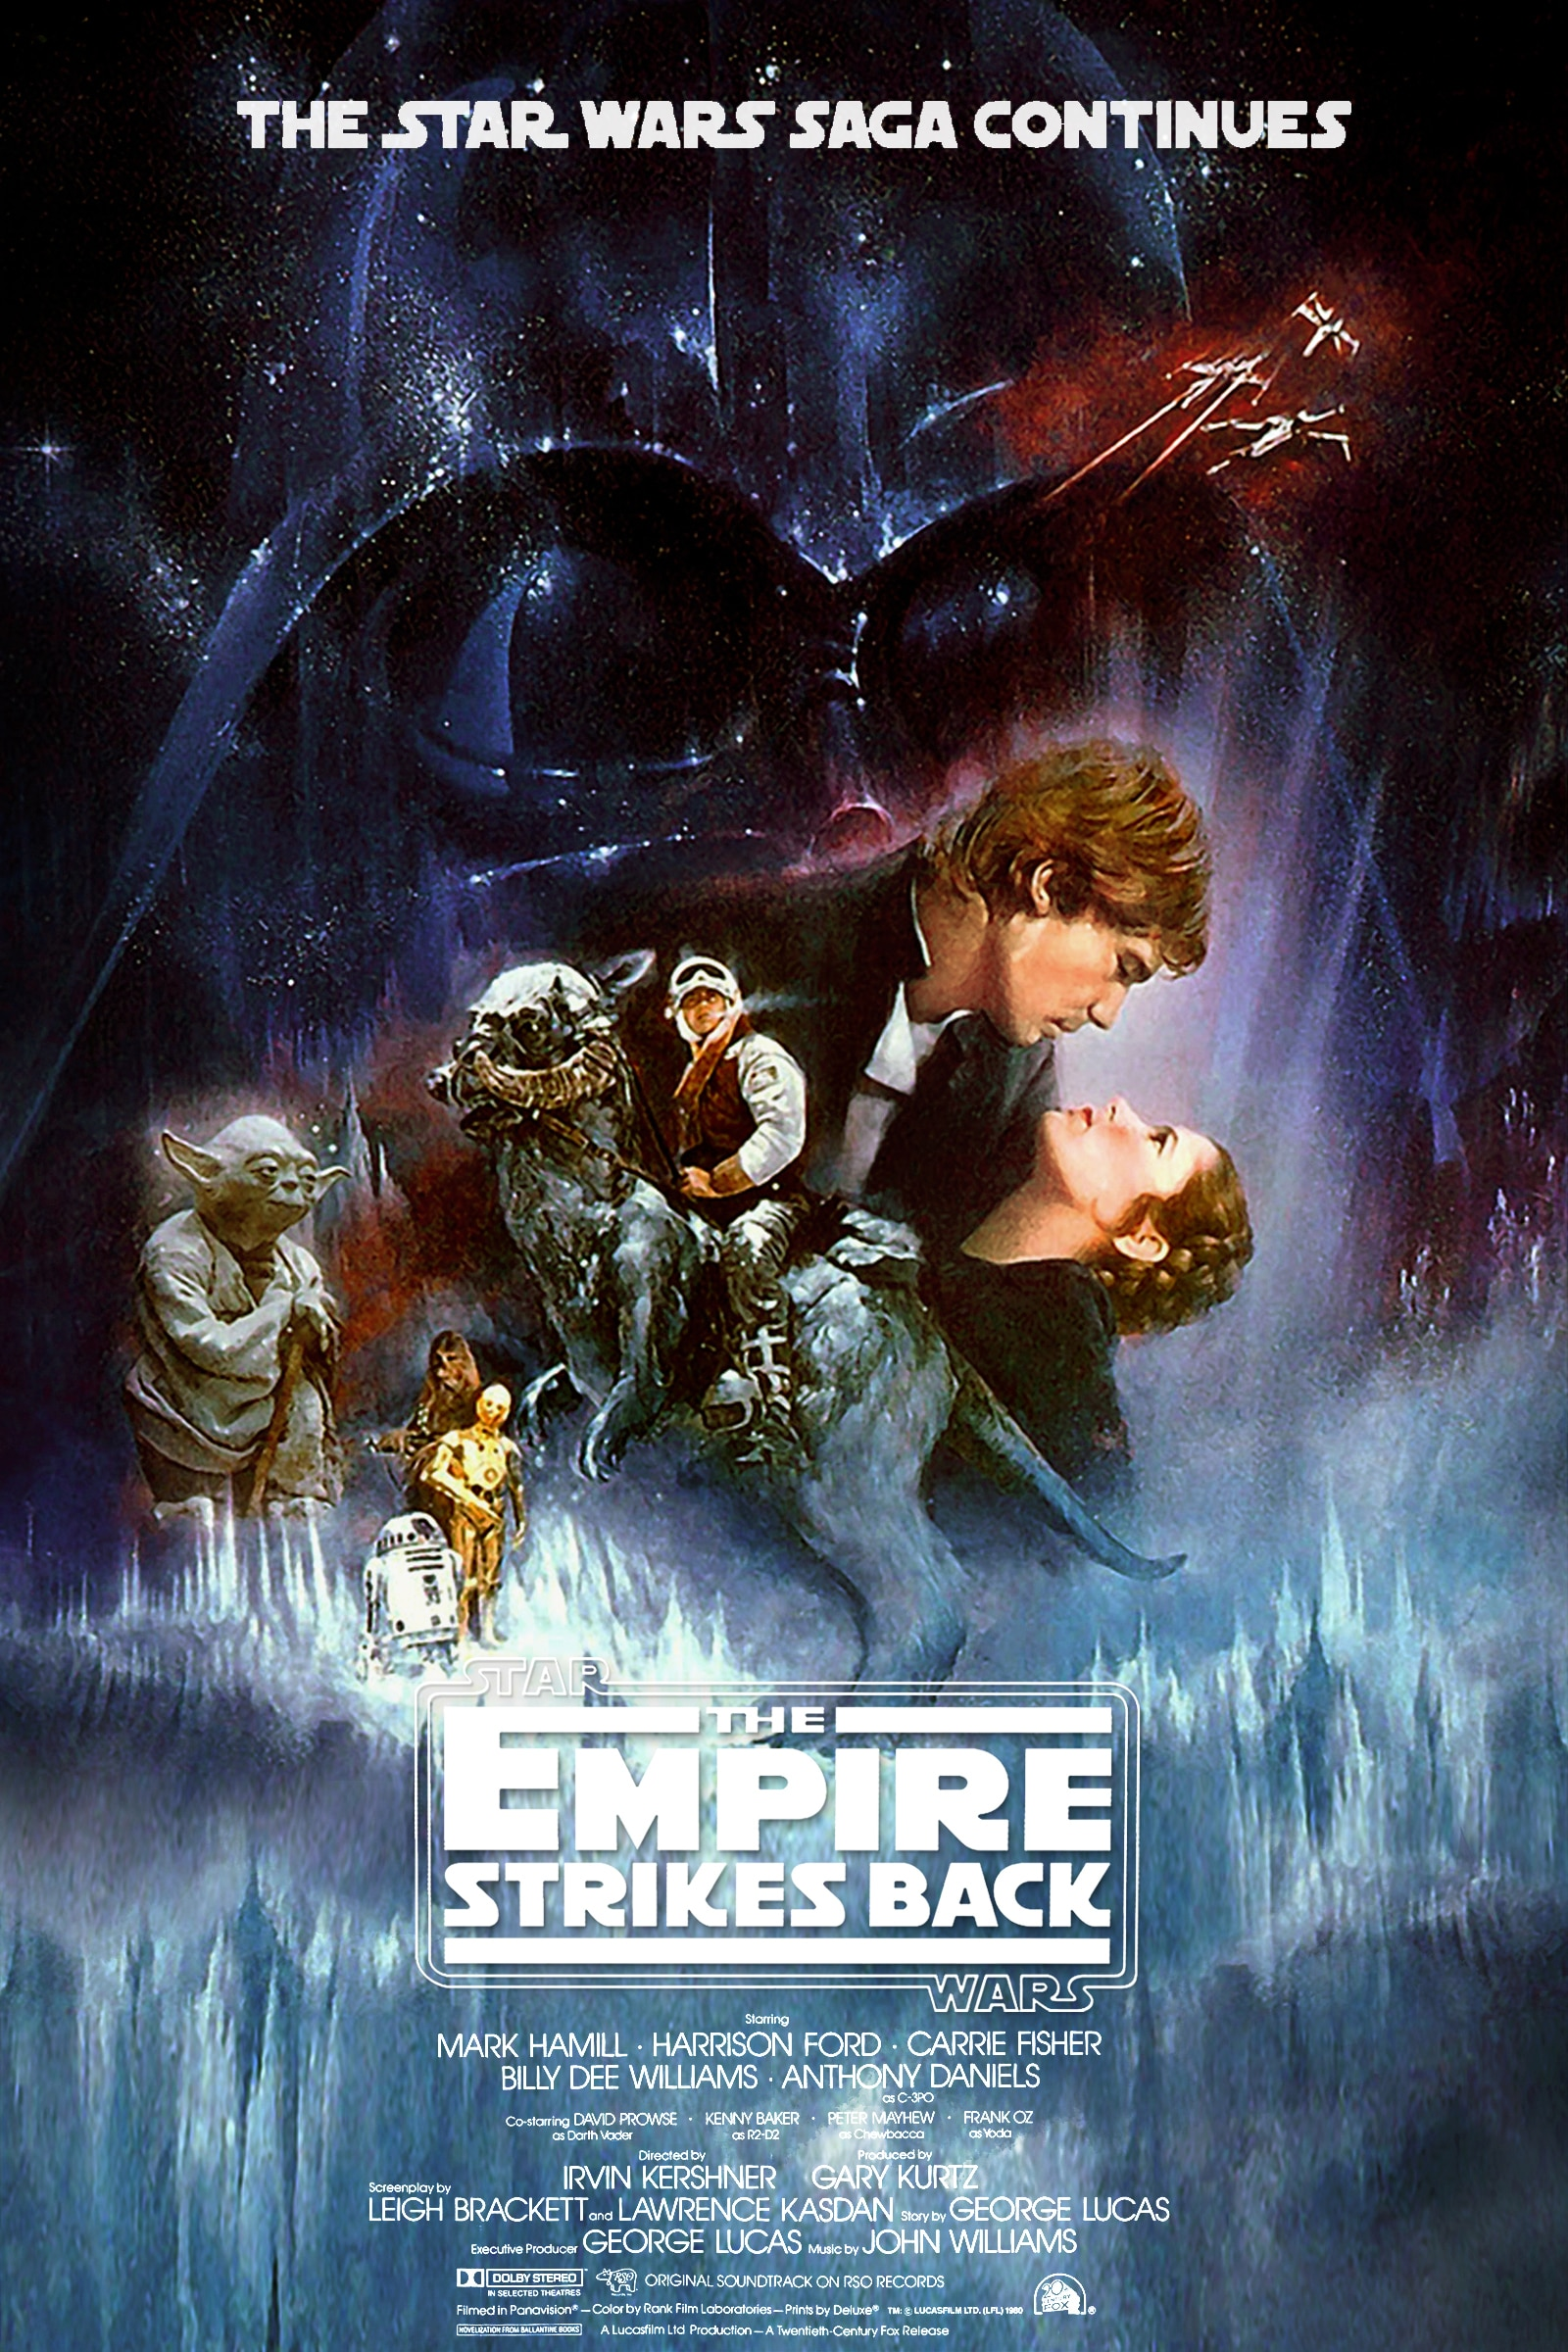 star wars the empire strikes back eipsode 5 1980 hd printable Poster wallpaper official poster